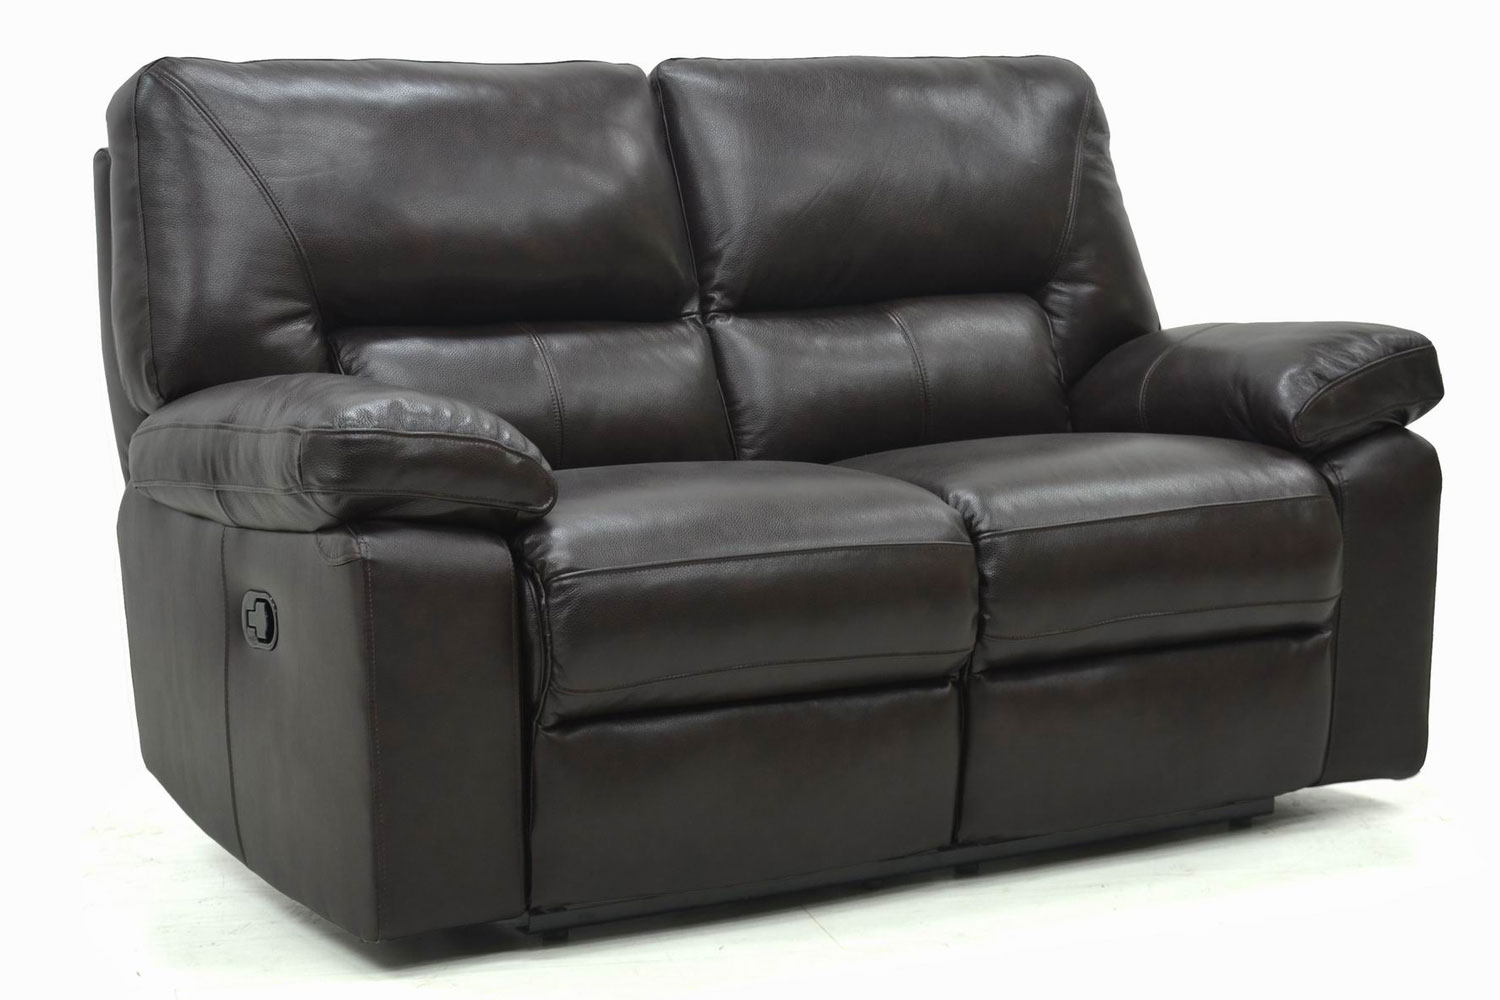 leather recliner chairs harvey norman making adirondack chair cushions 2 seater sofa whitfield